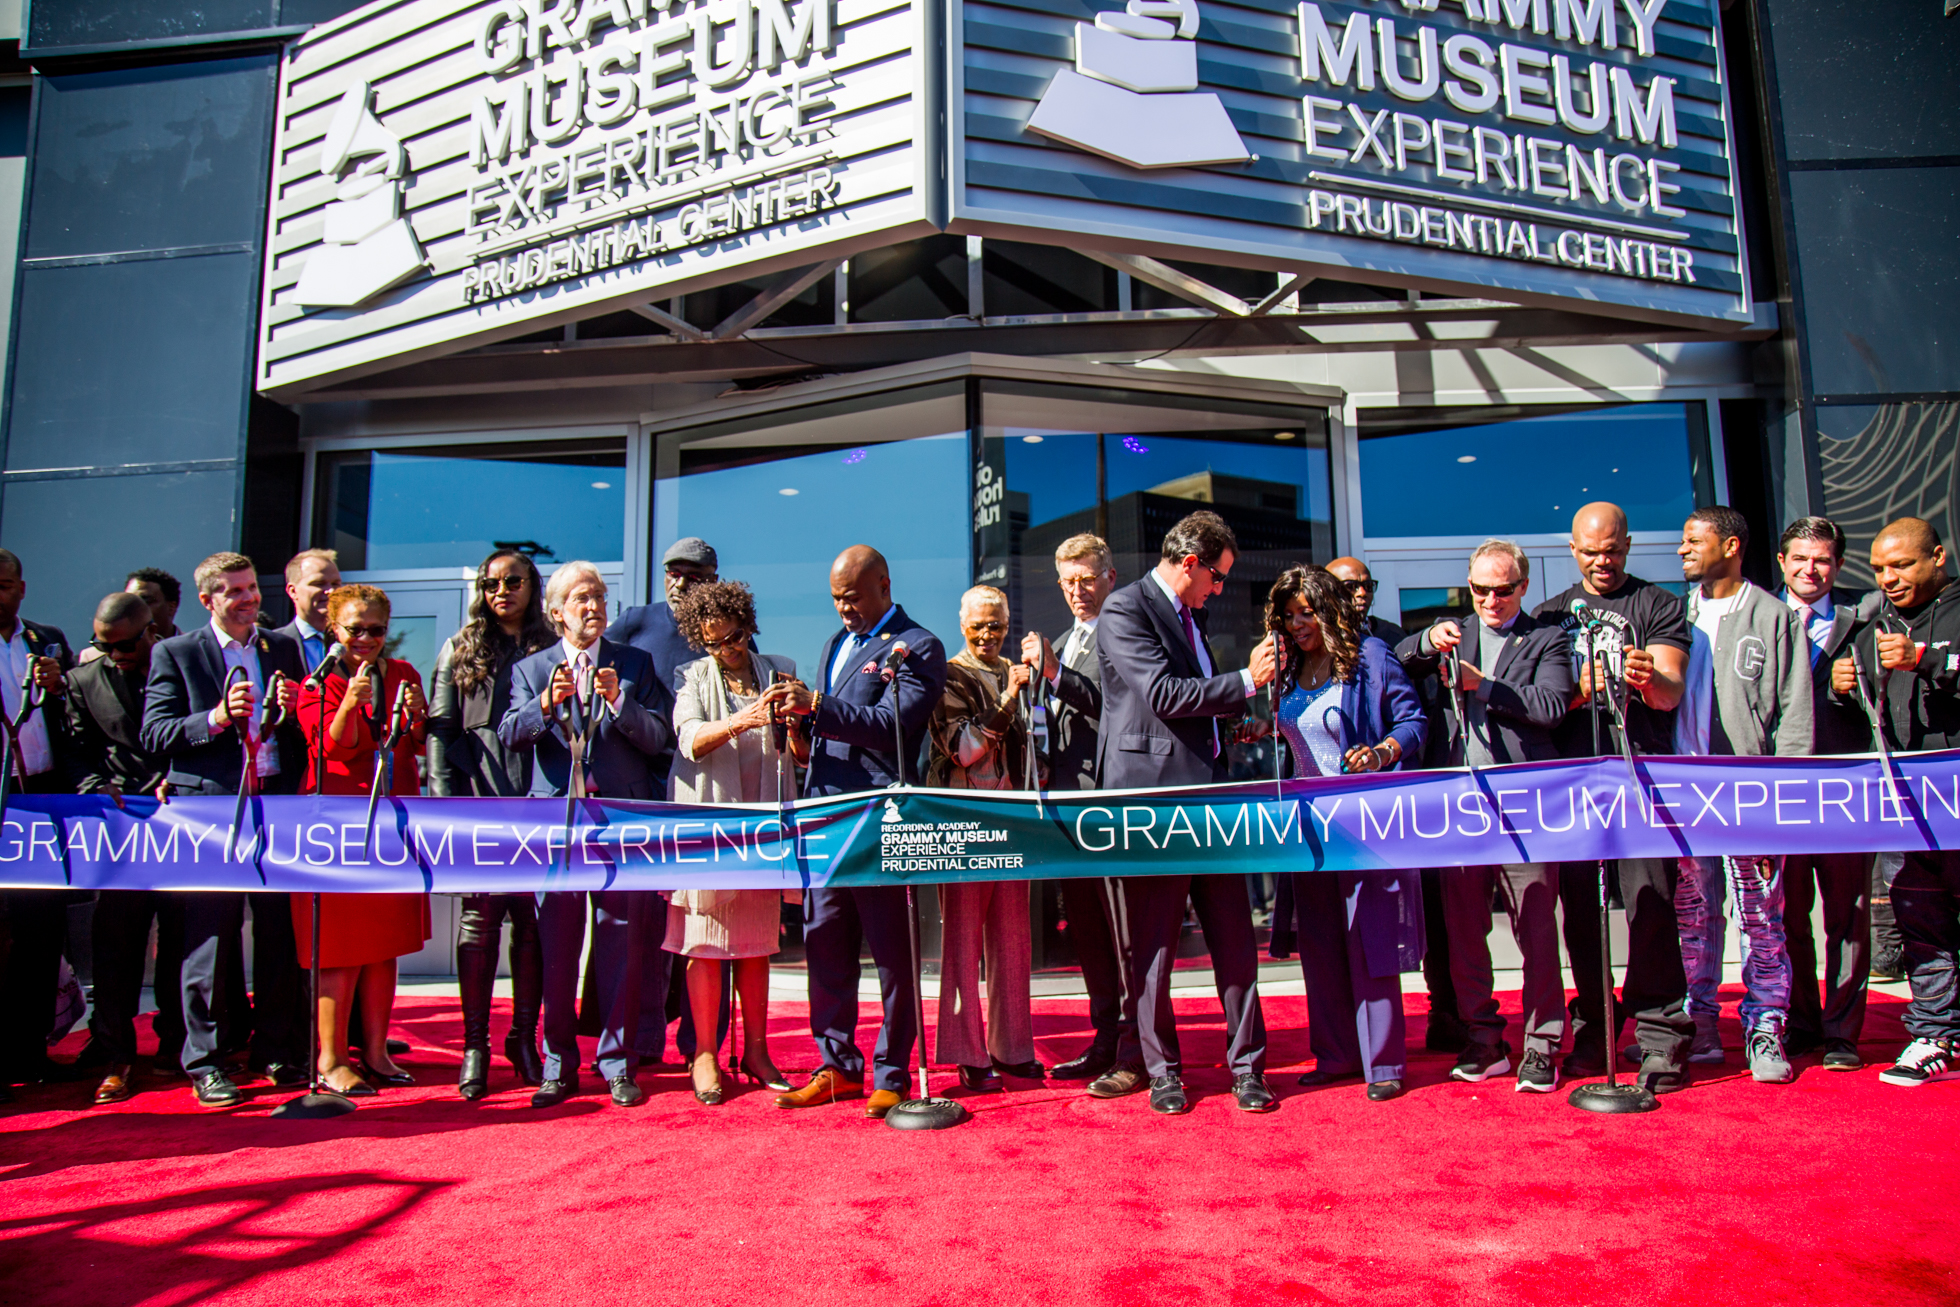 Grammy Museum Opening at Prudential Center